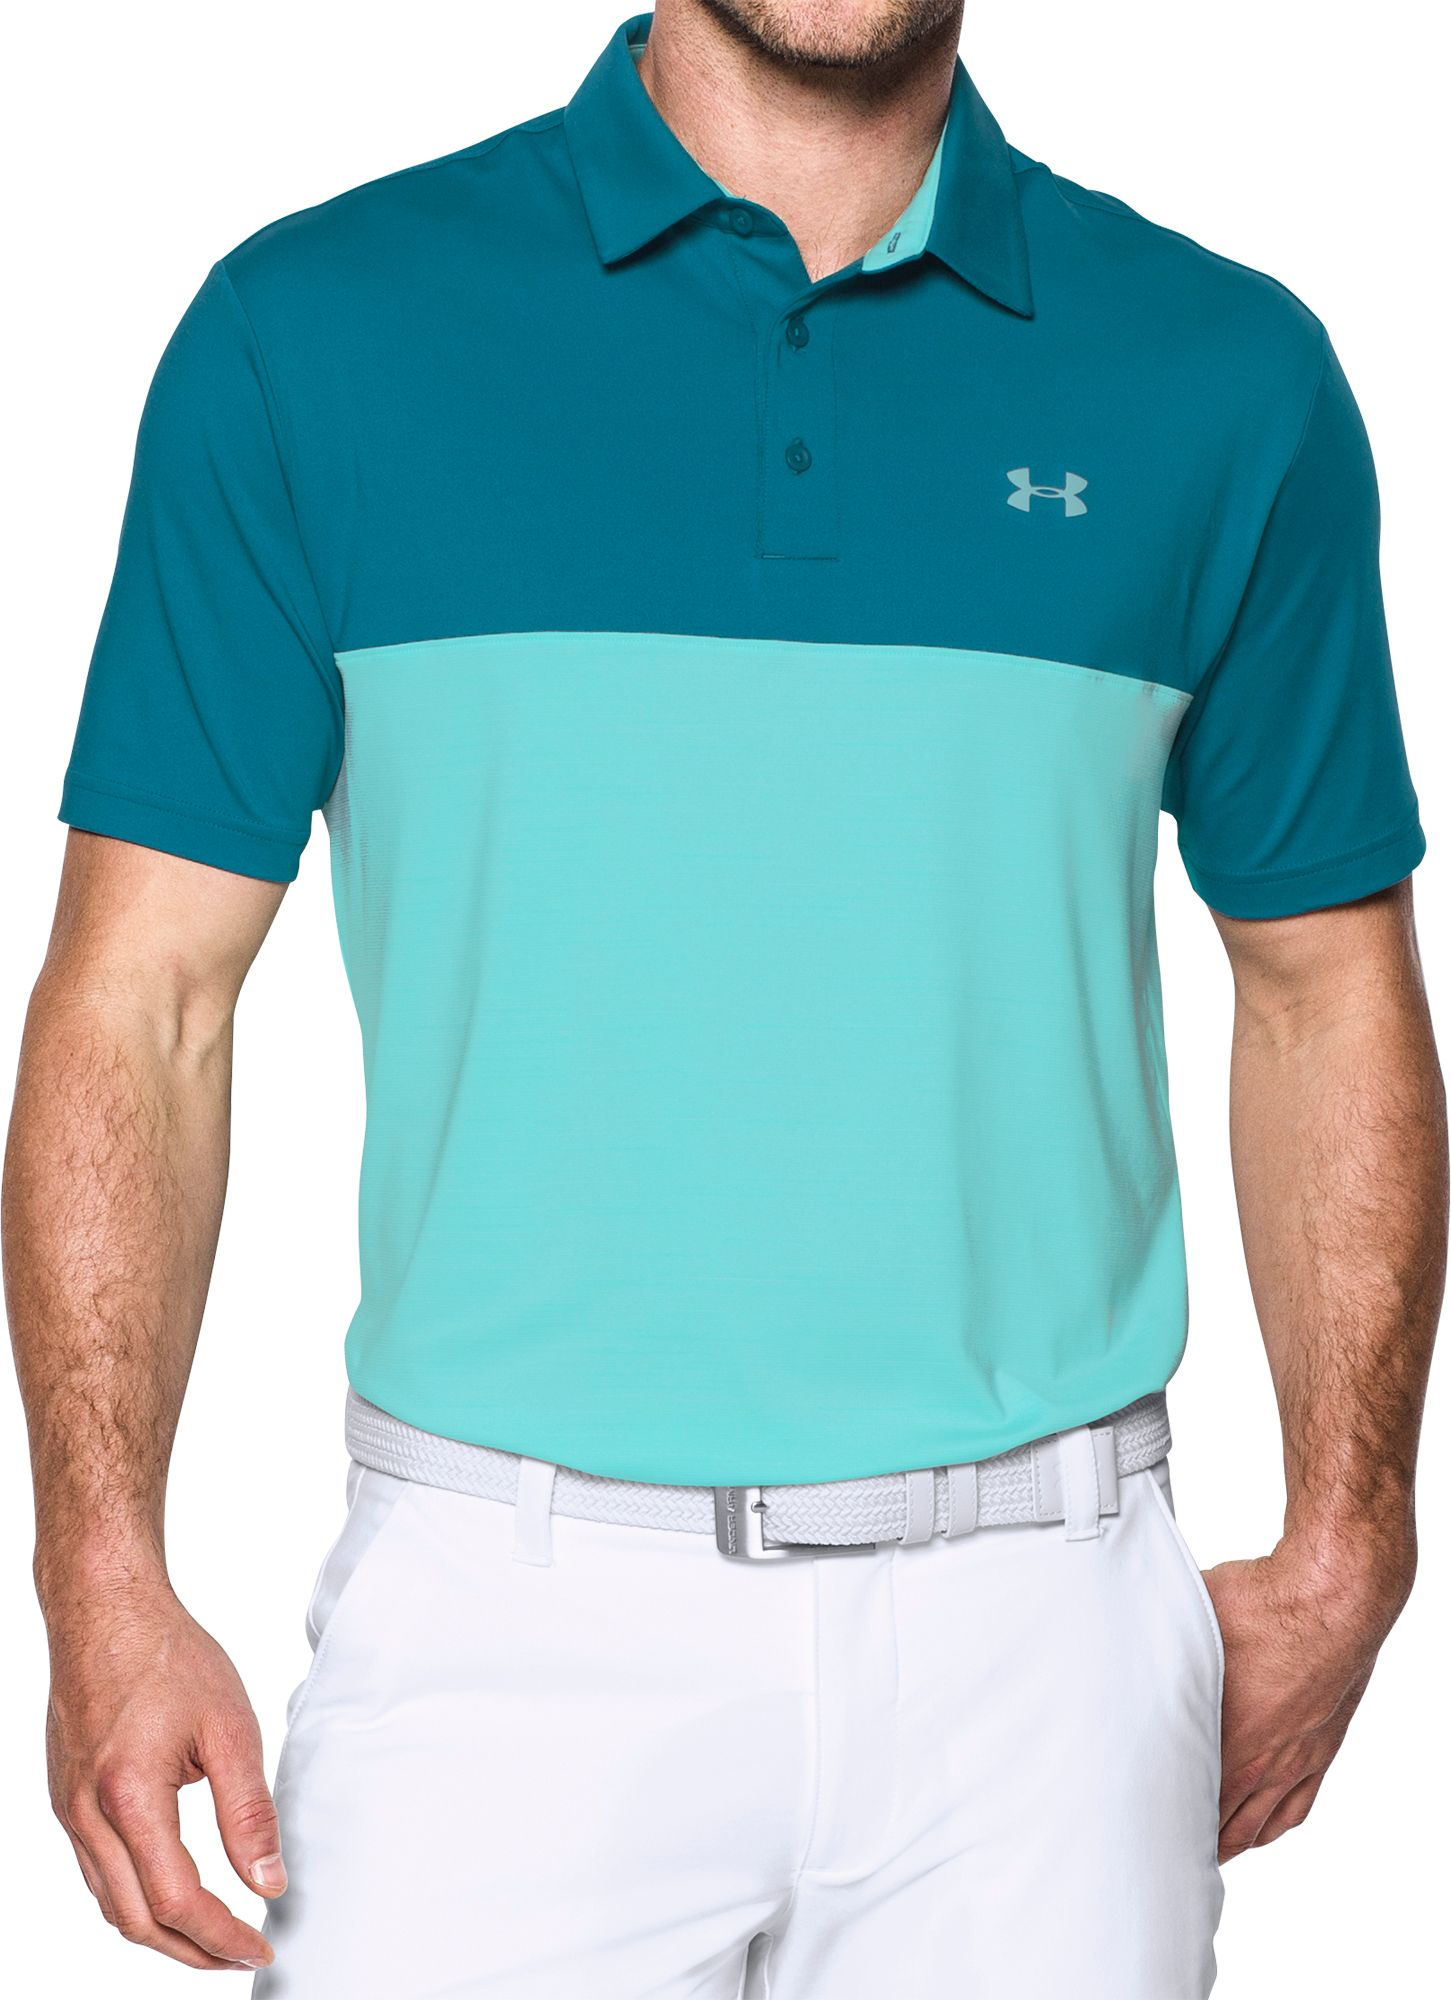 83b815a0 Under Armour Playoff Blocked Golf Polo Shirt